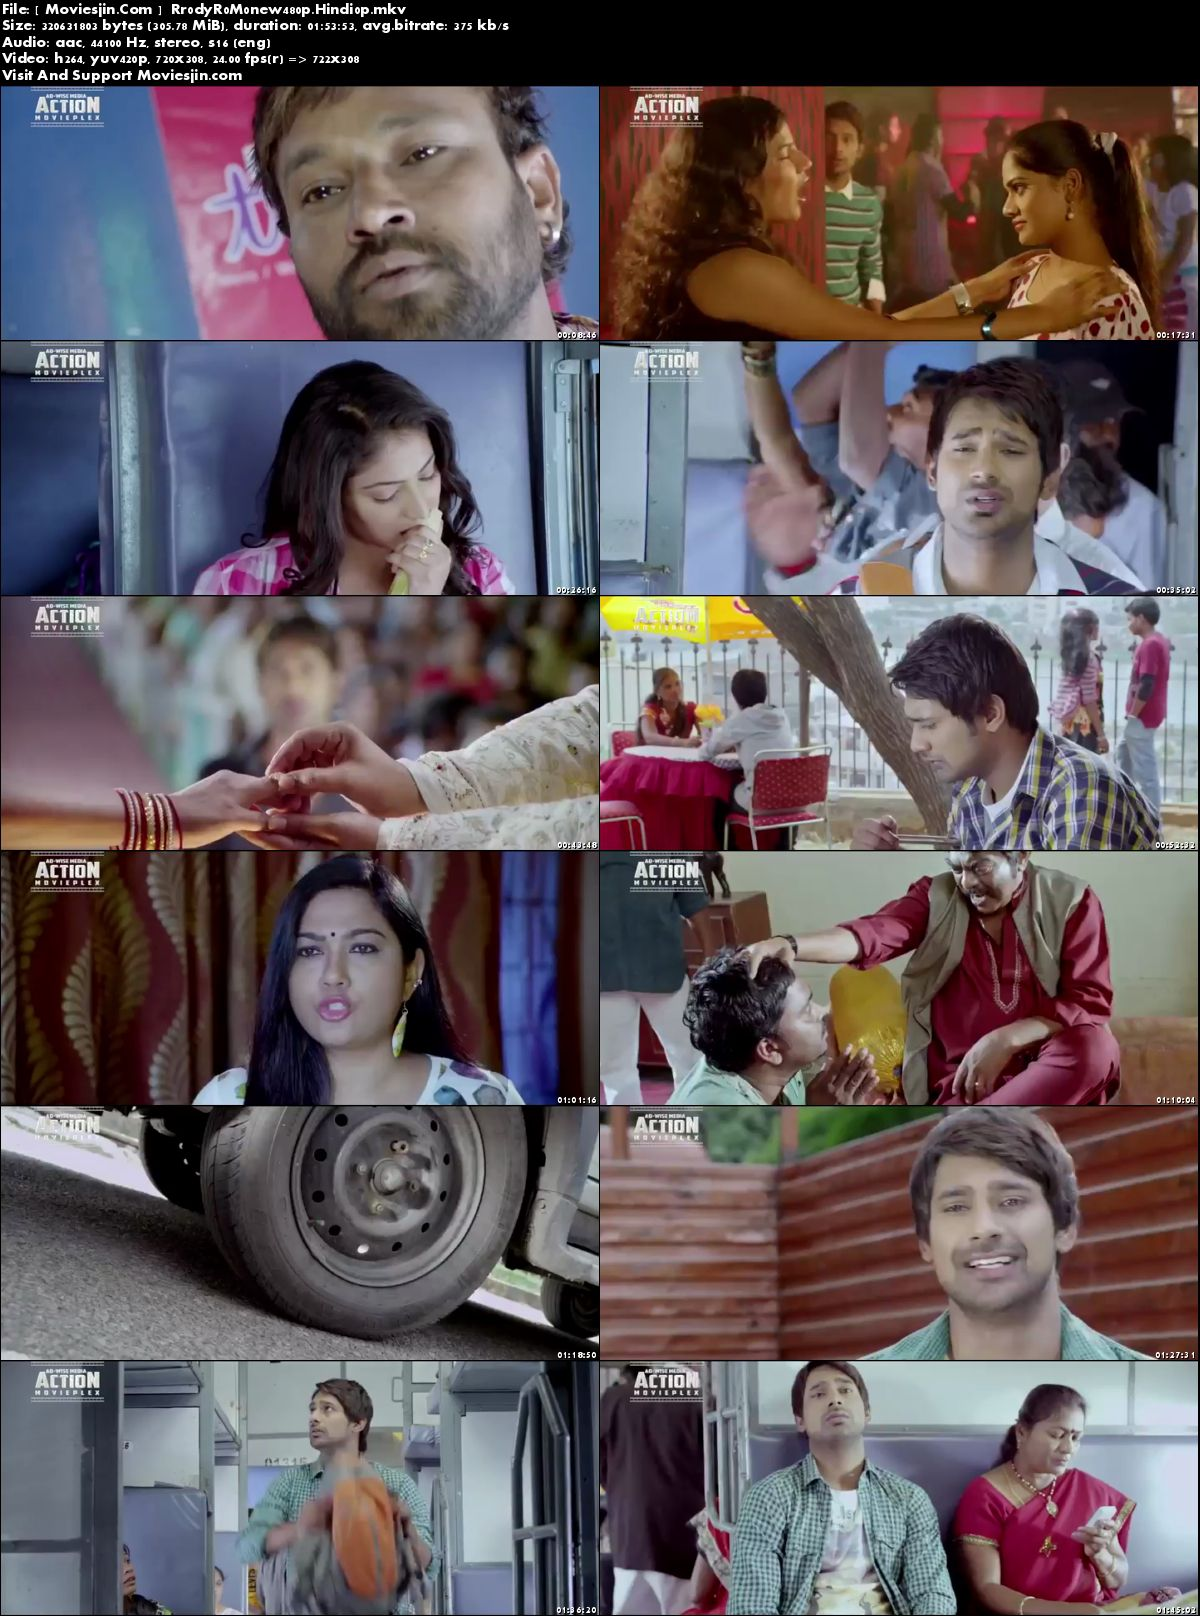 Watch Online Rowdy Romeo 2018 Movie HDRip Hindi Dubbed x264 720p Full Movie Download mkvcage